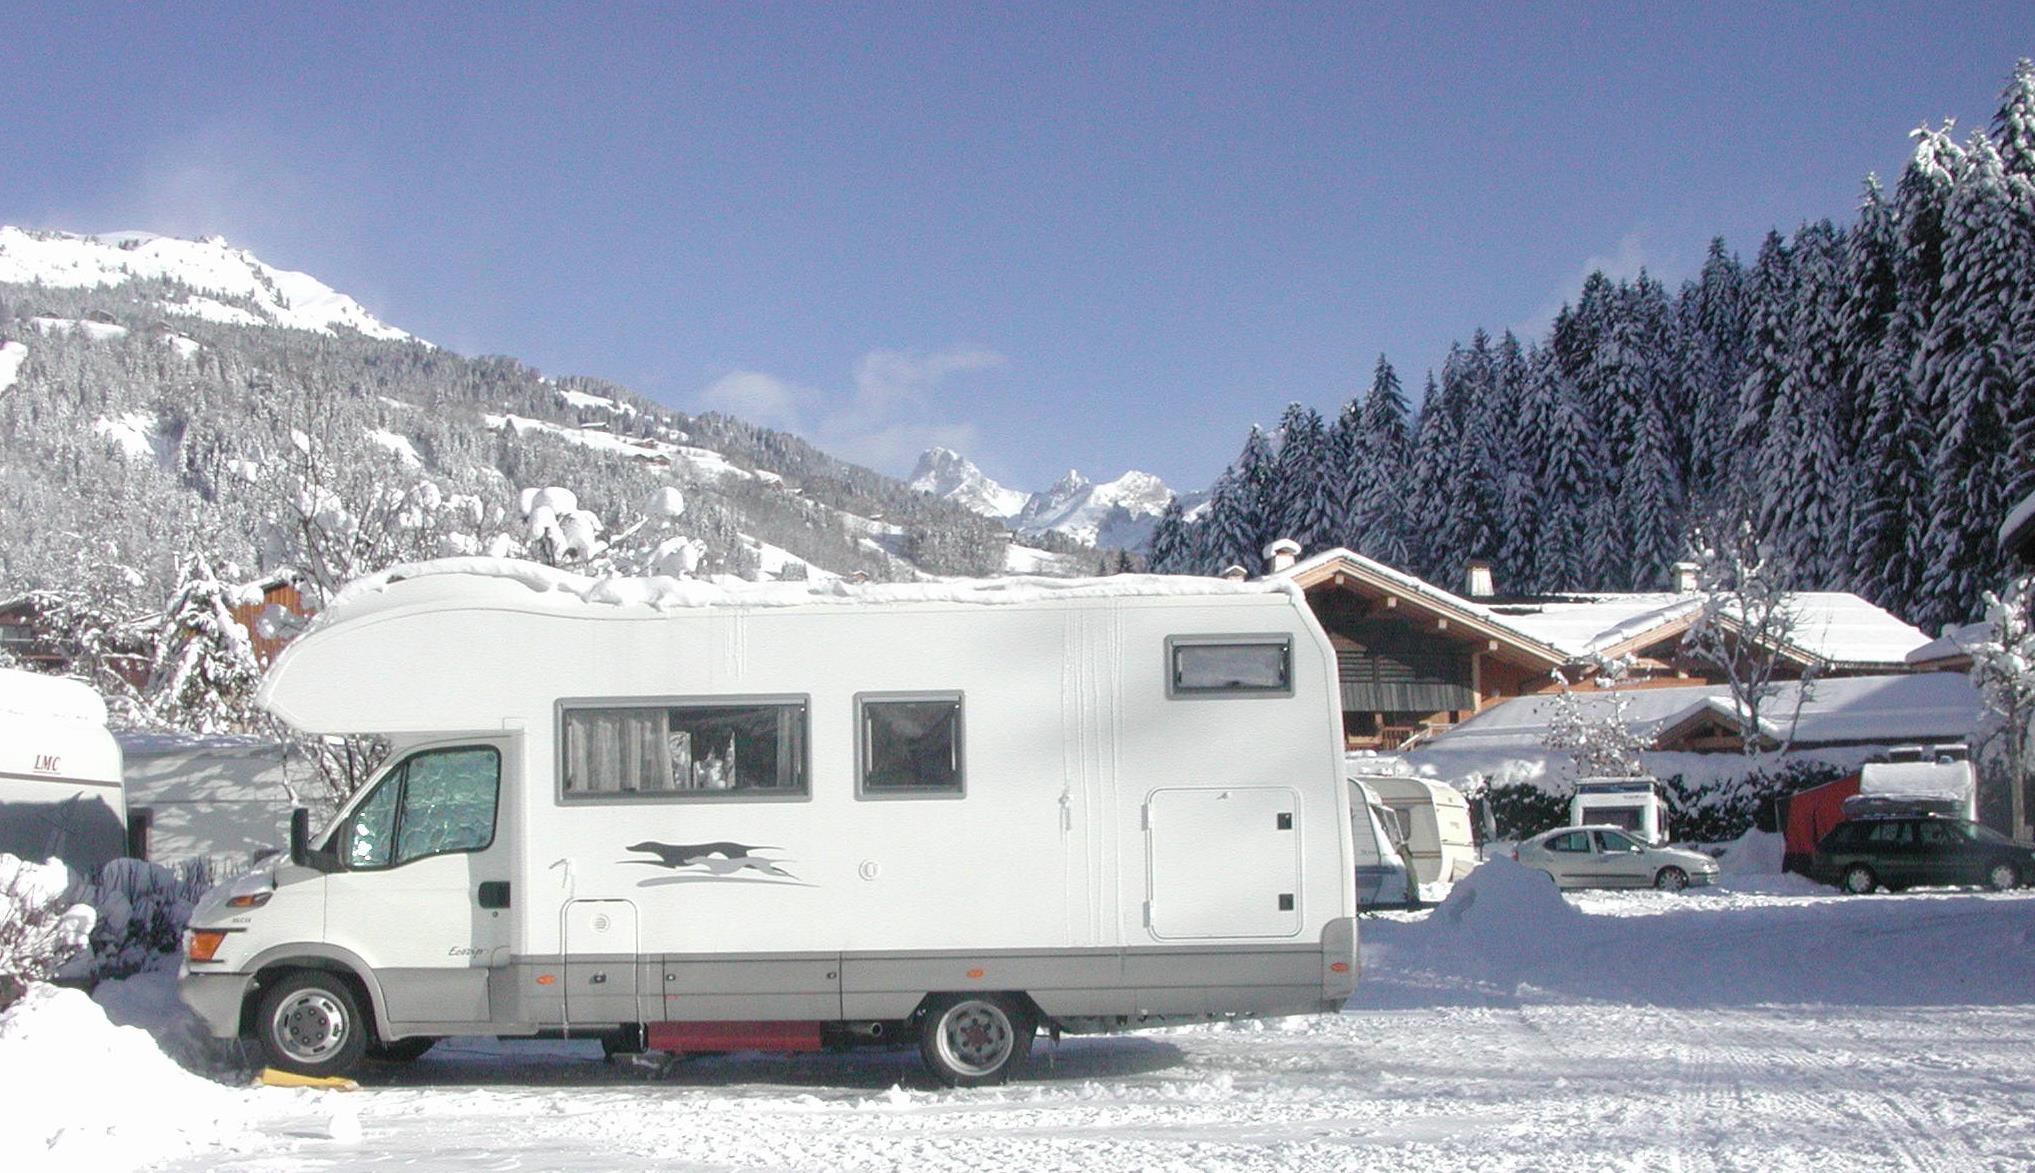 Wintercamping Pitch